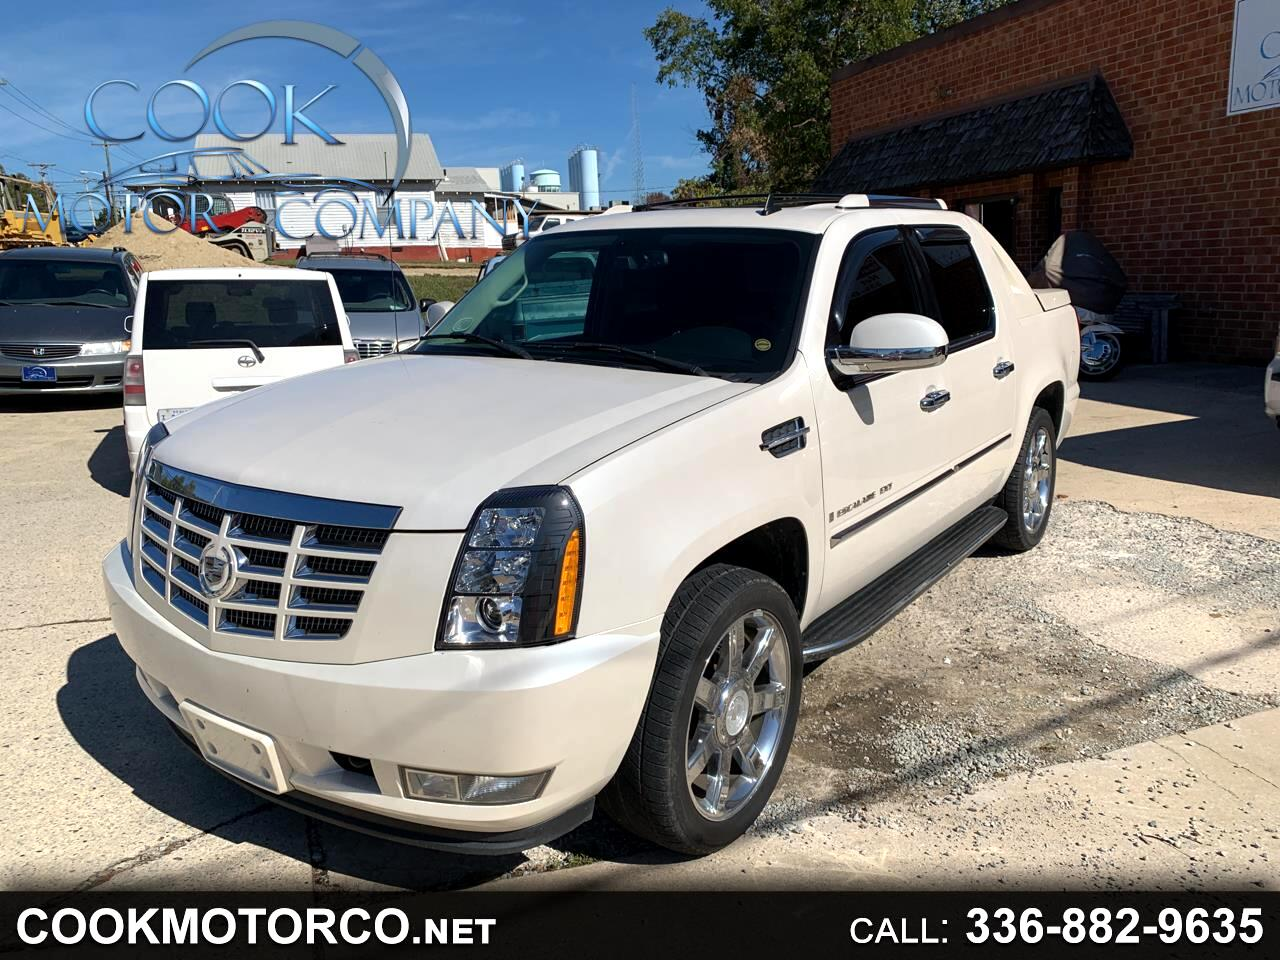 2008 Cadillac Escalade EXT AWD 4dr Luxury